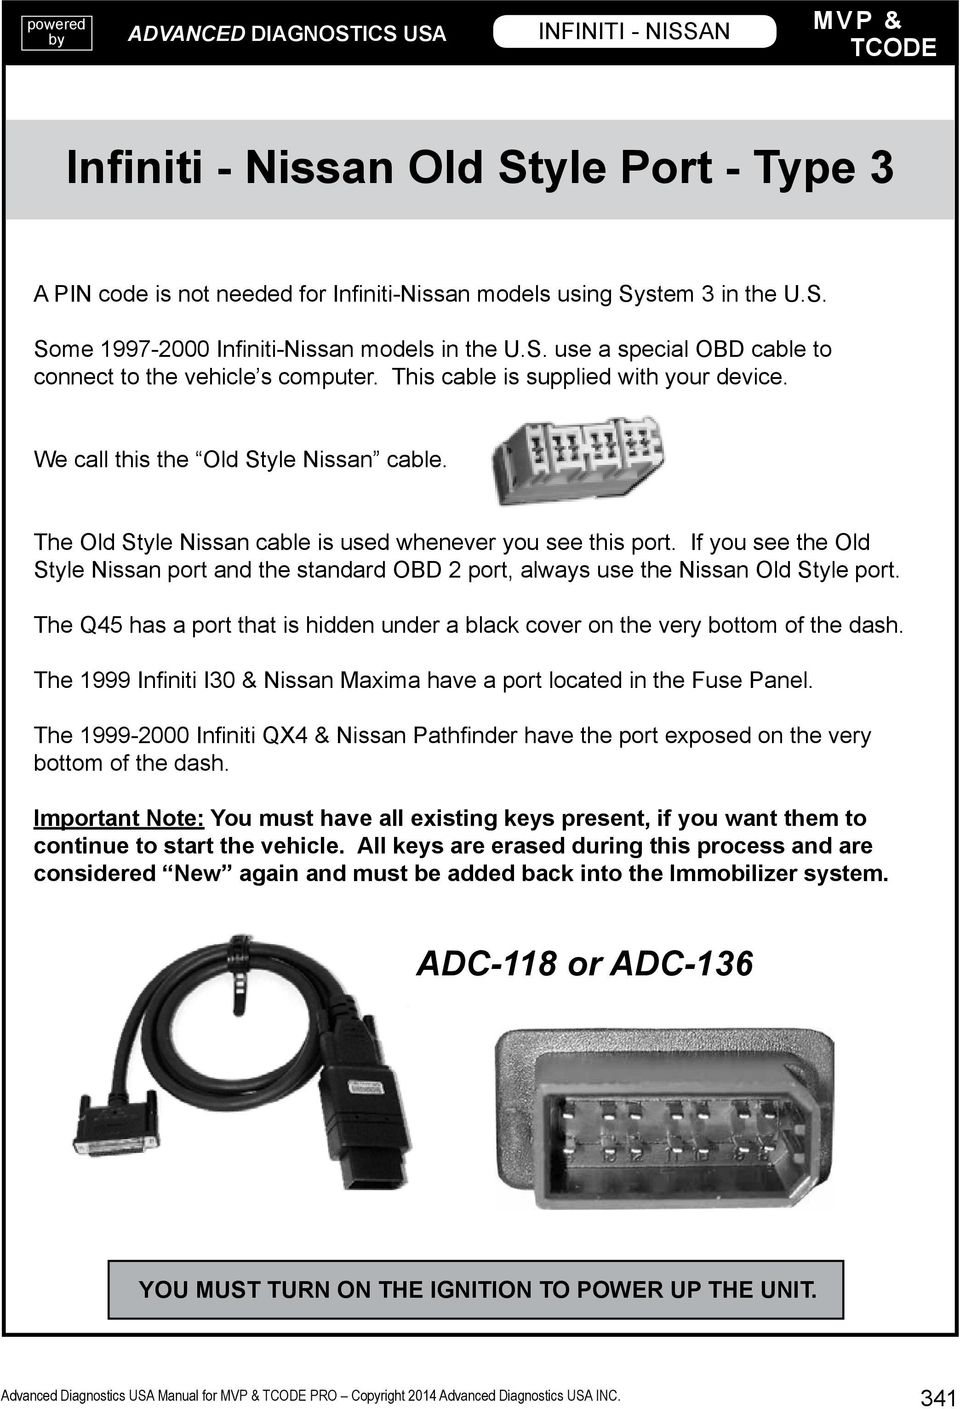 Infiniti Nissan This Section Contains Pdf Color Wiring Diagram For 1999 I30 The Old Style Cable Is Used Whenever You See Port If